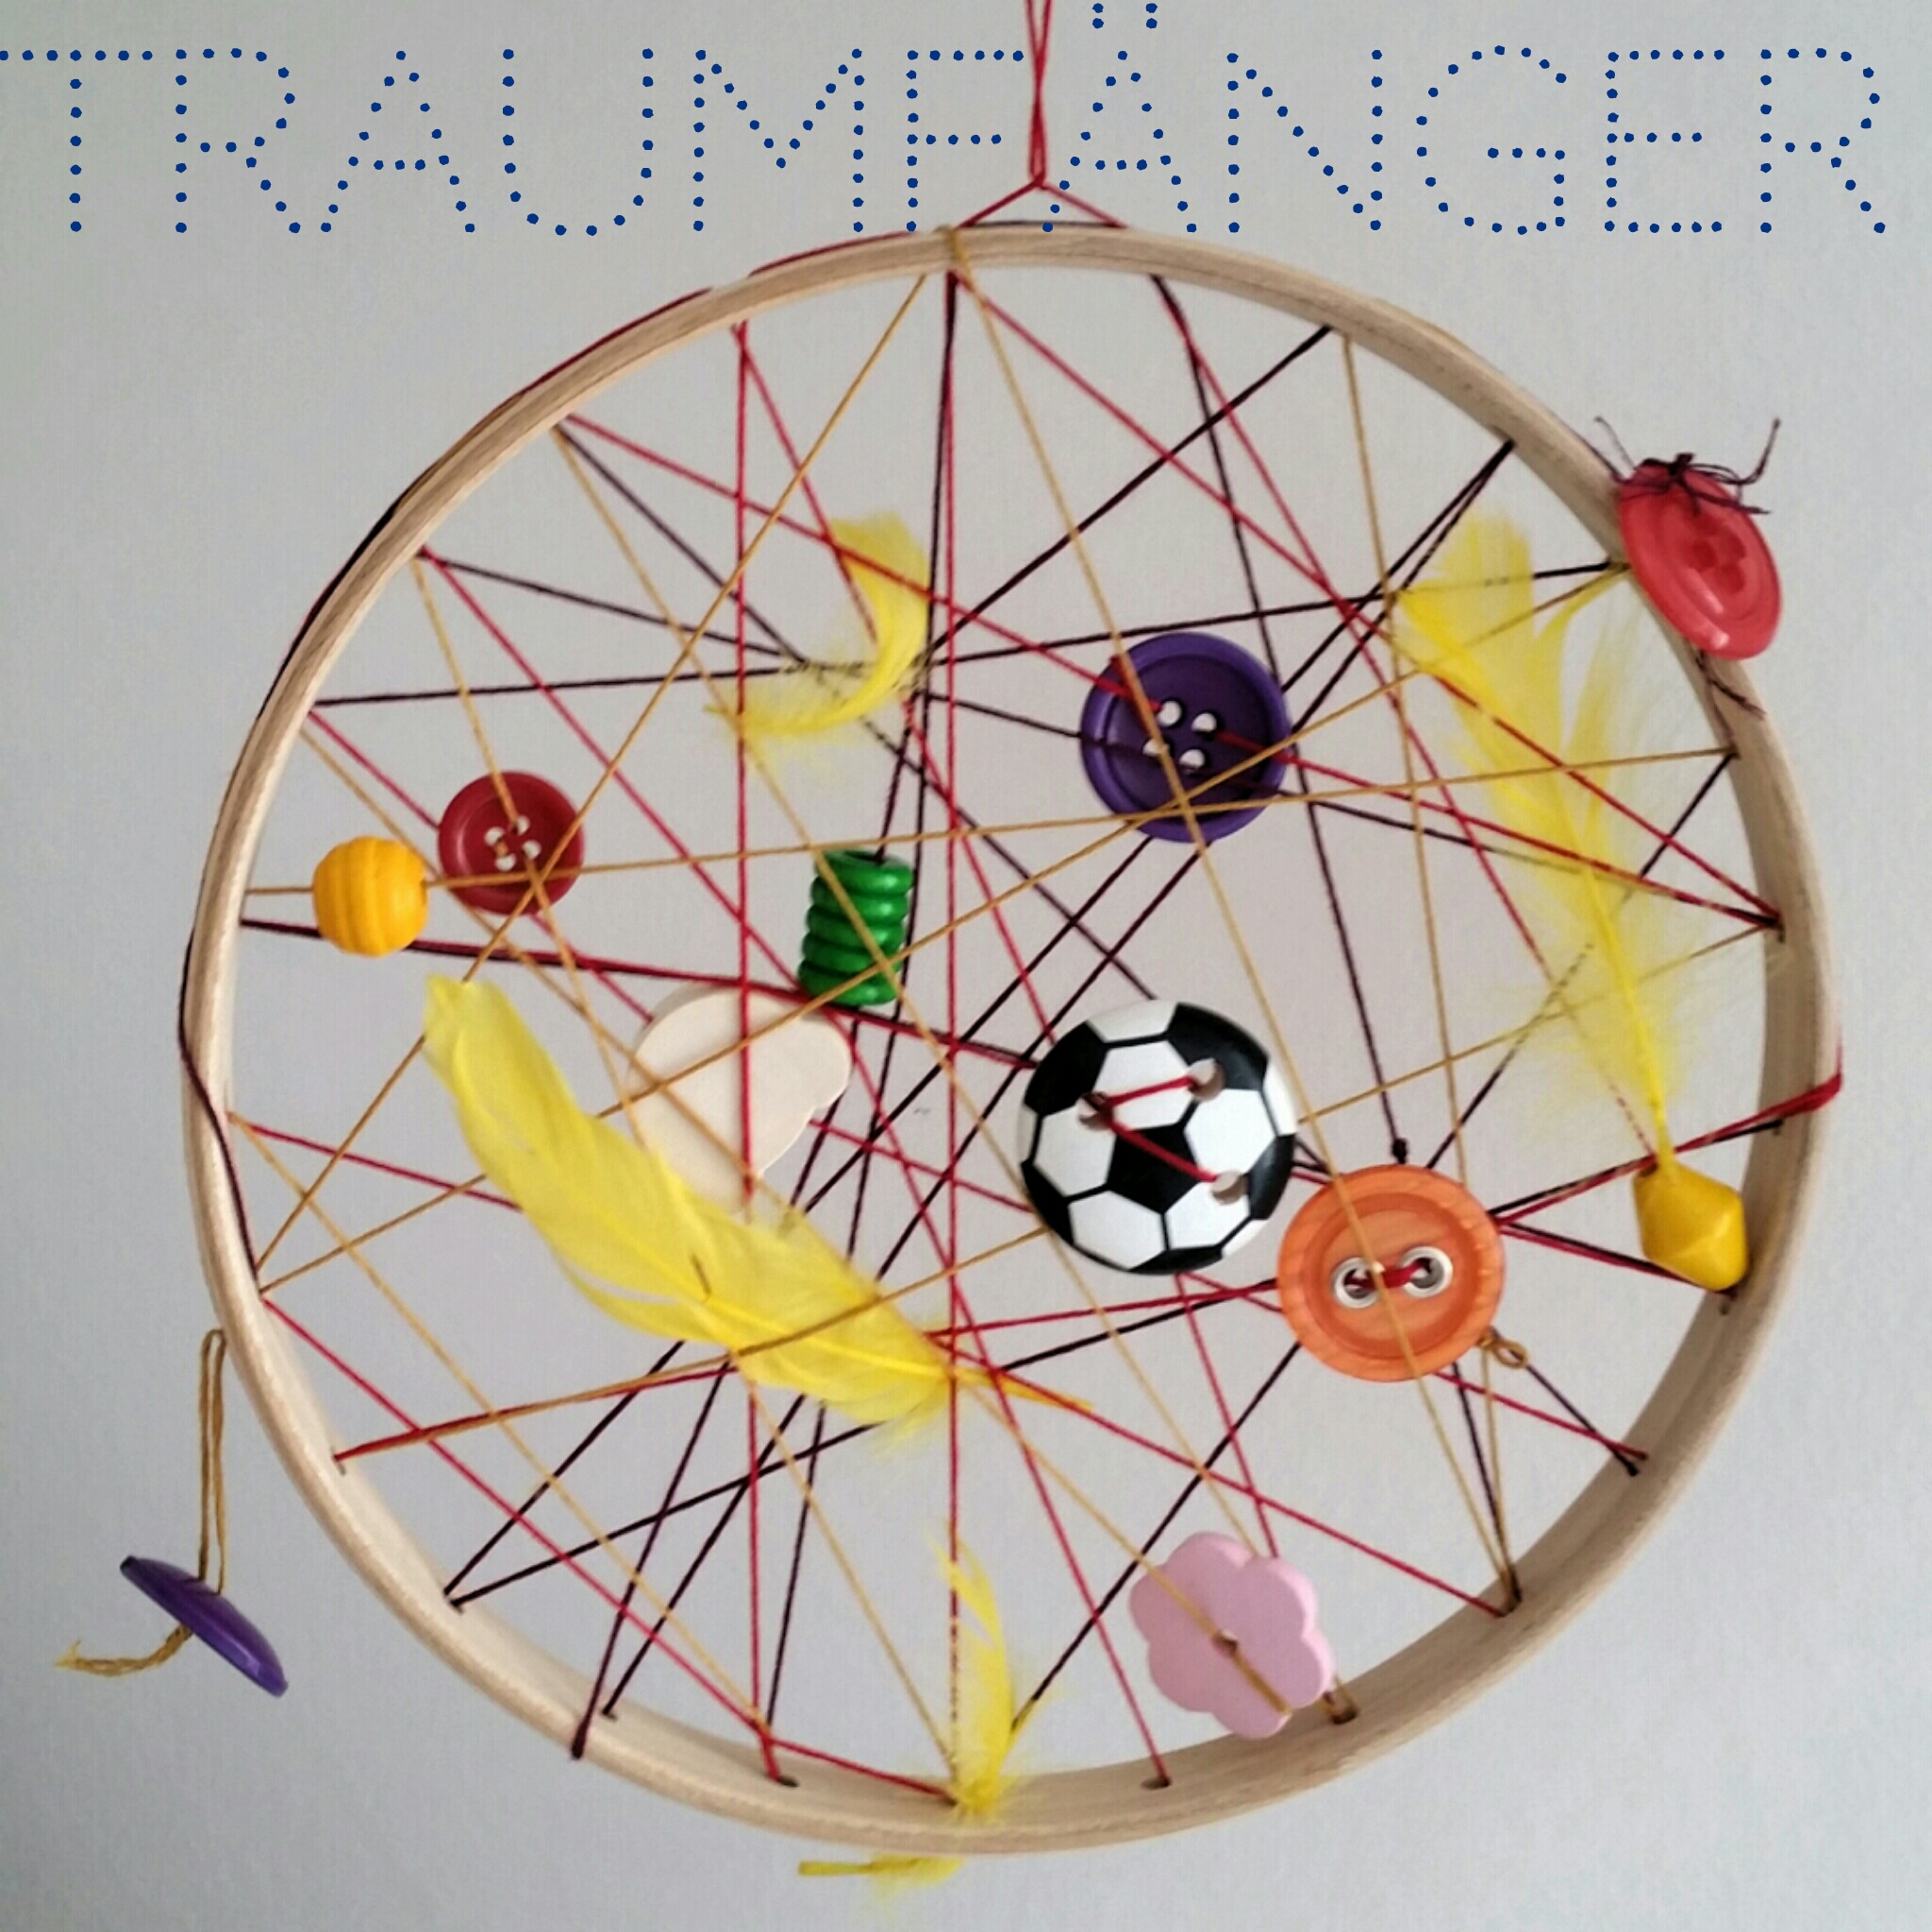 Traumfänger Dreamcatcher